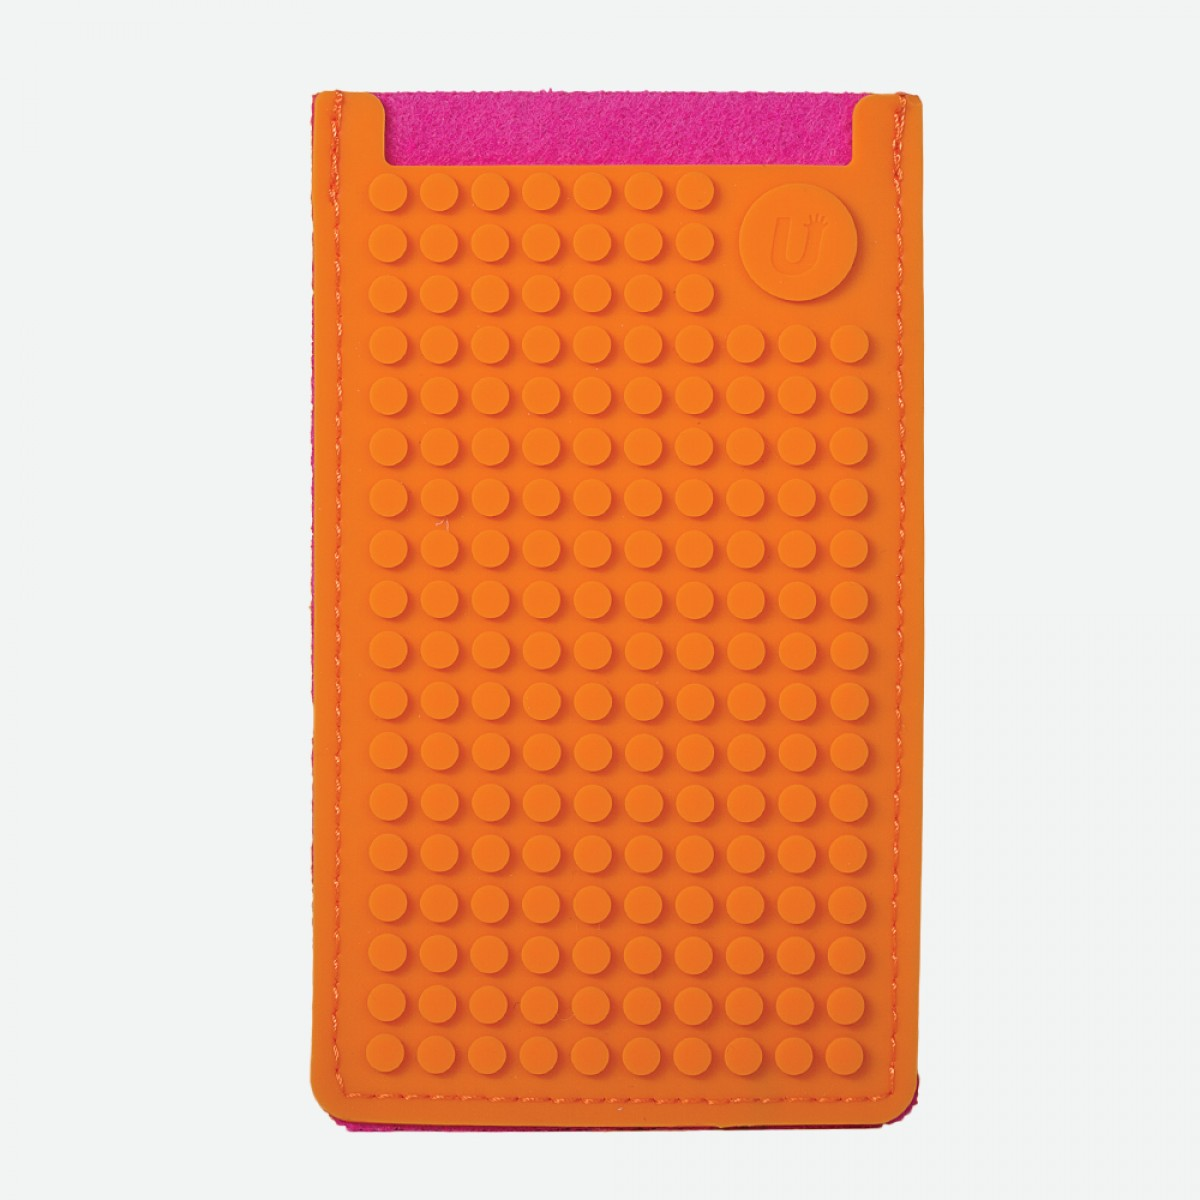 UPixel Pixel Phone Case Small - Orange